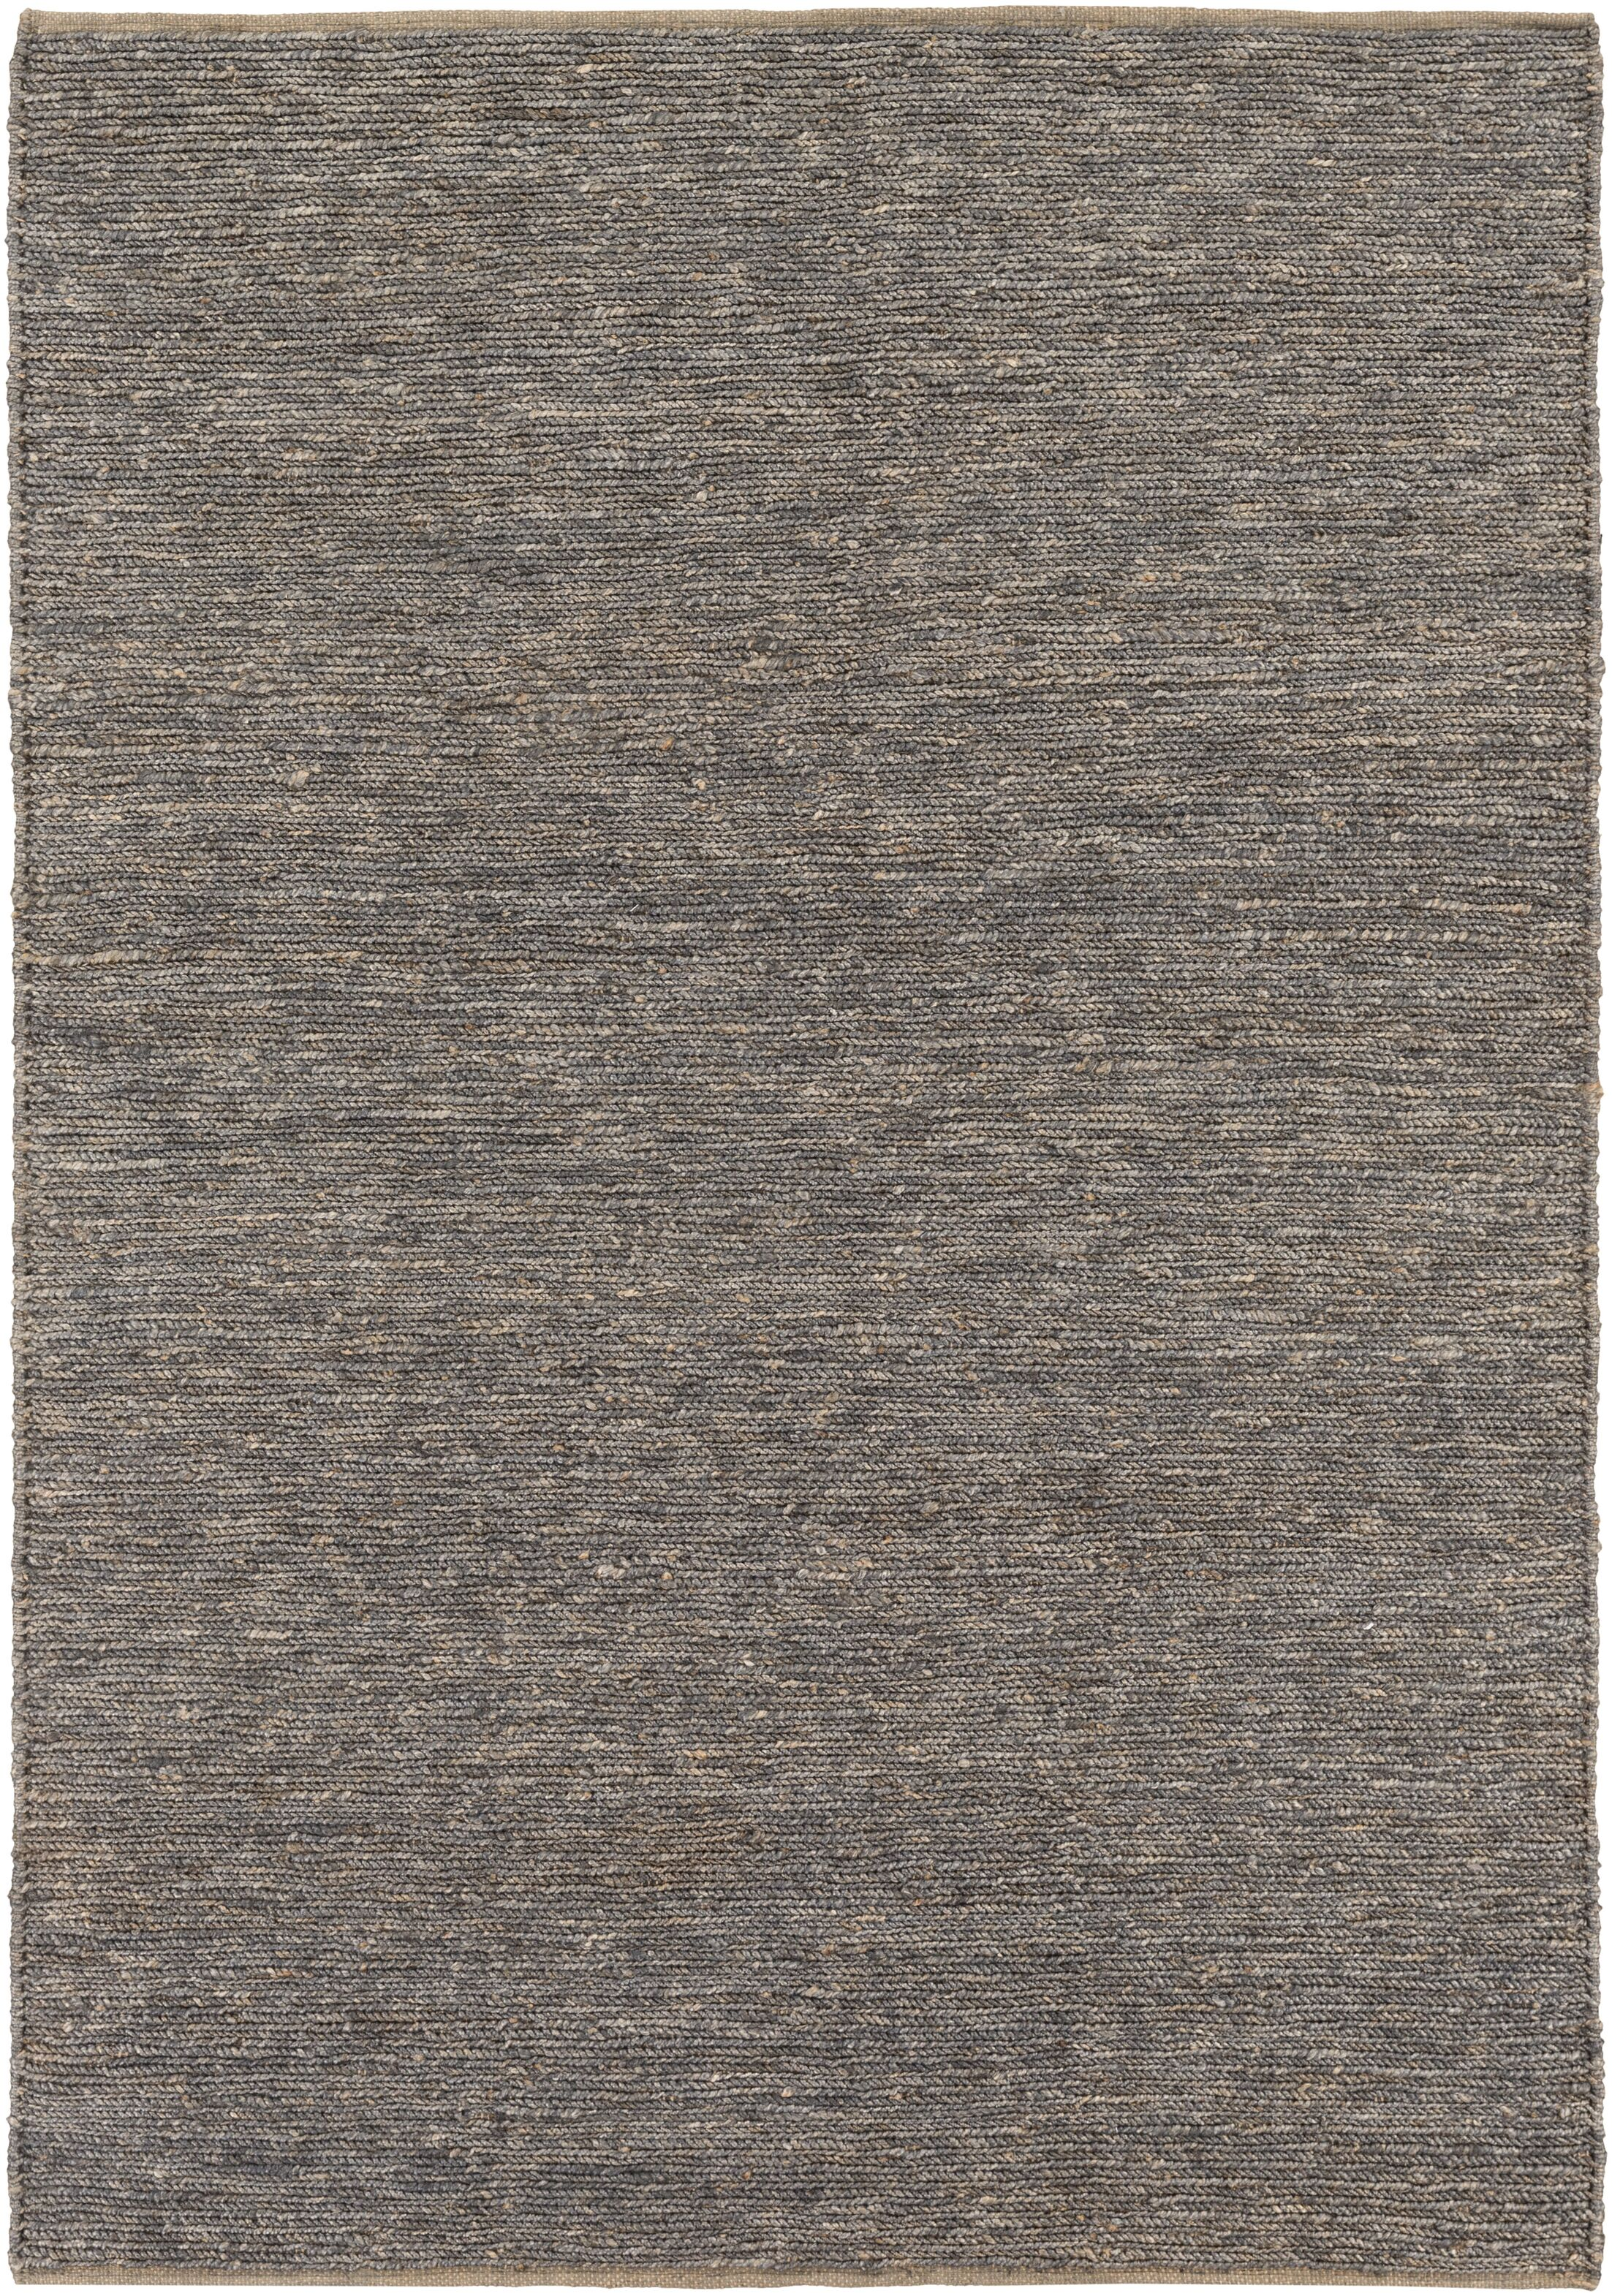 Zellers Hand-Woven Sage Area Rug Rug Size: Rectangle 3' x 5'